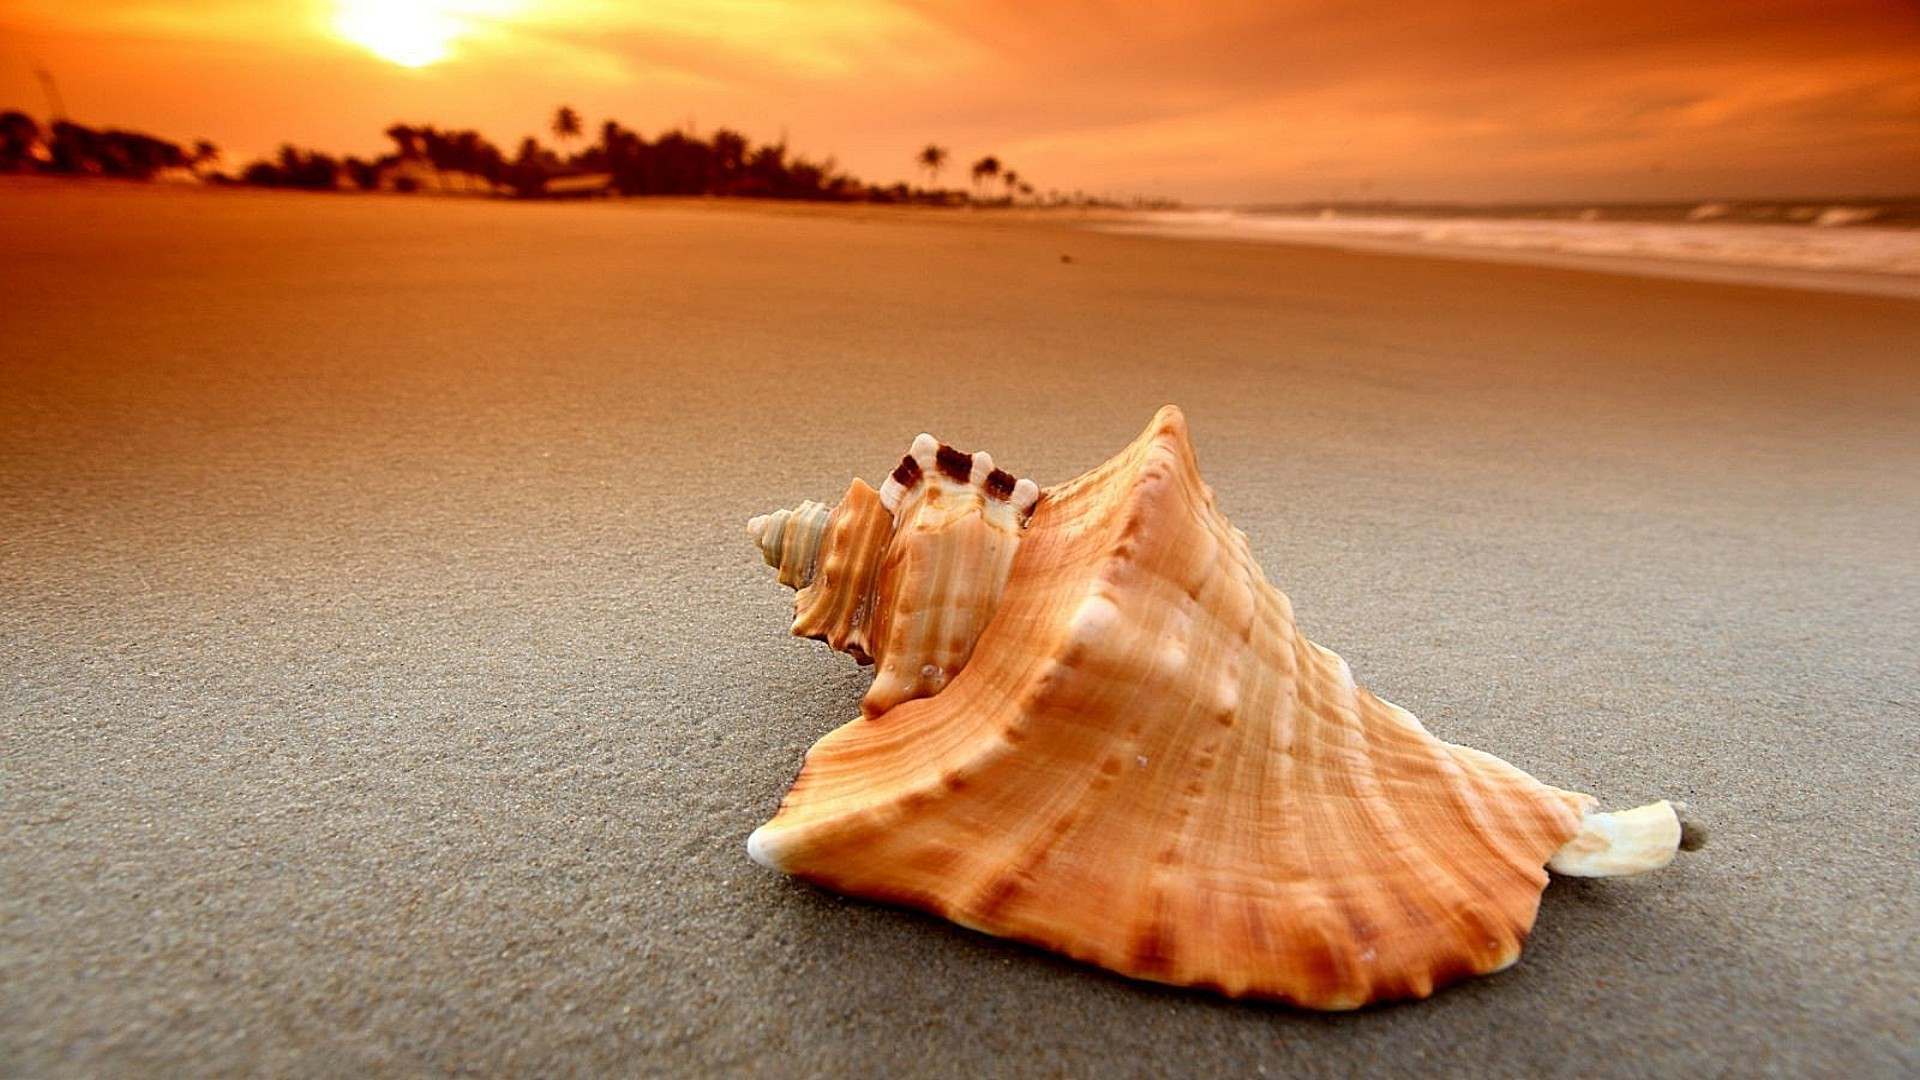 marine life beach sand seashore sea seashell ocean summer water shell sun travel nature vacation tropical shore sunset starfish seaside fair weather